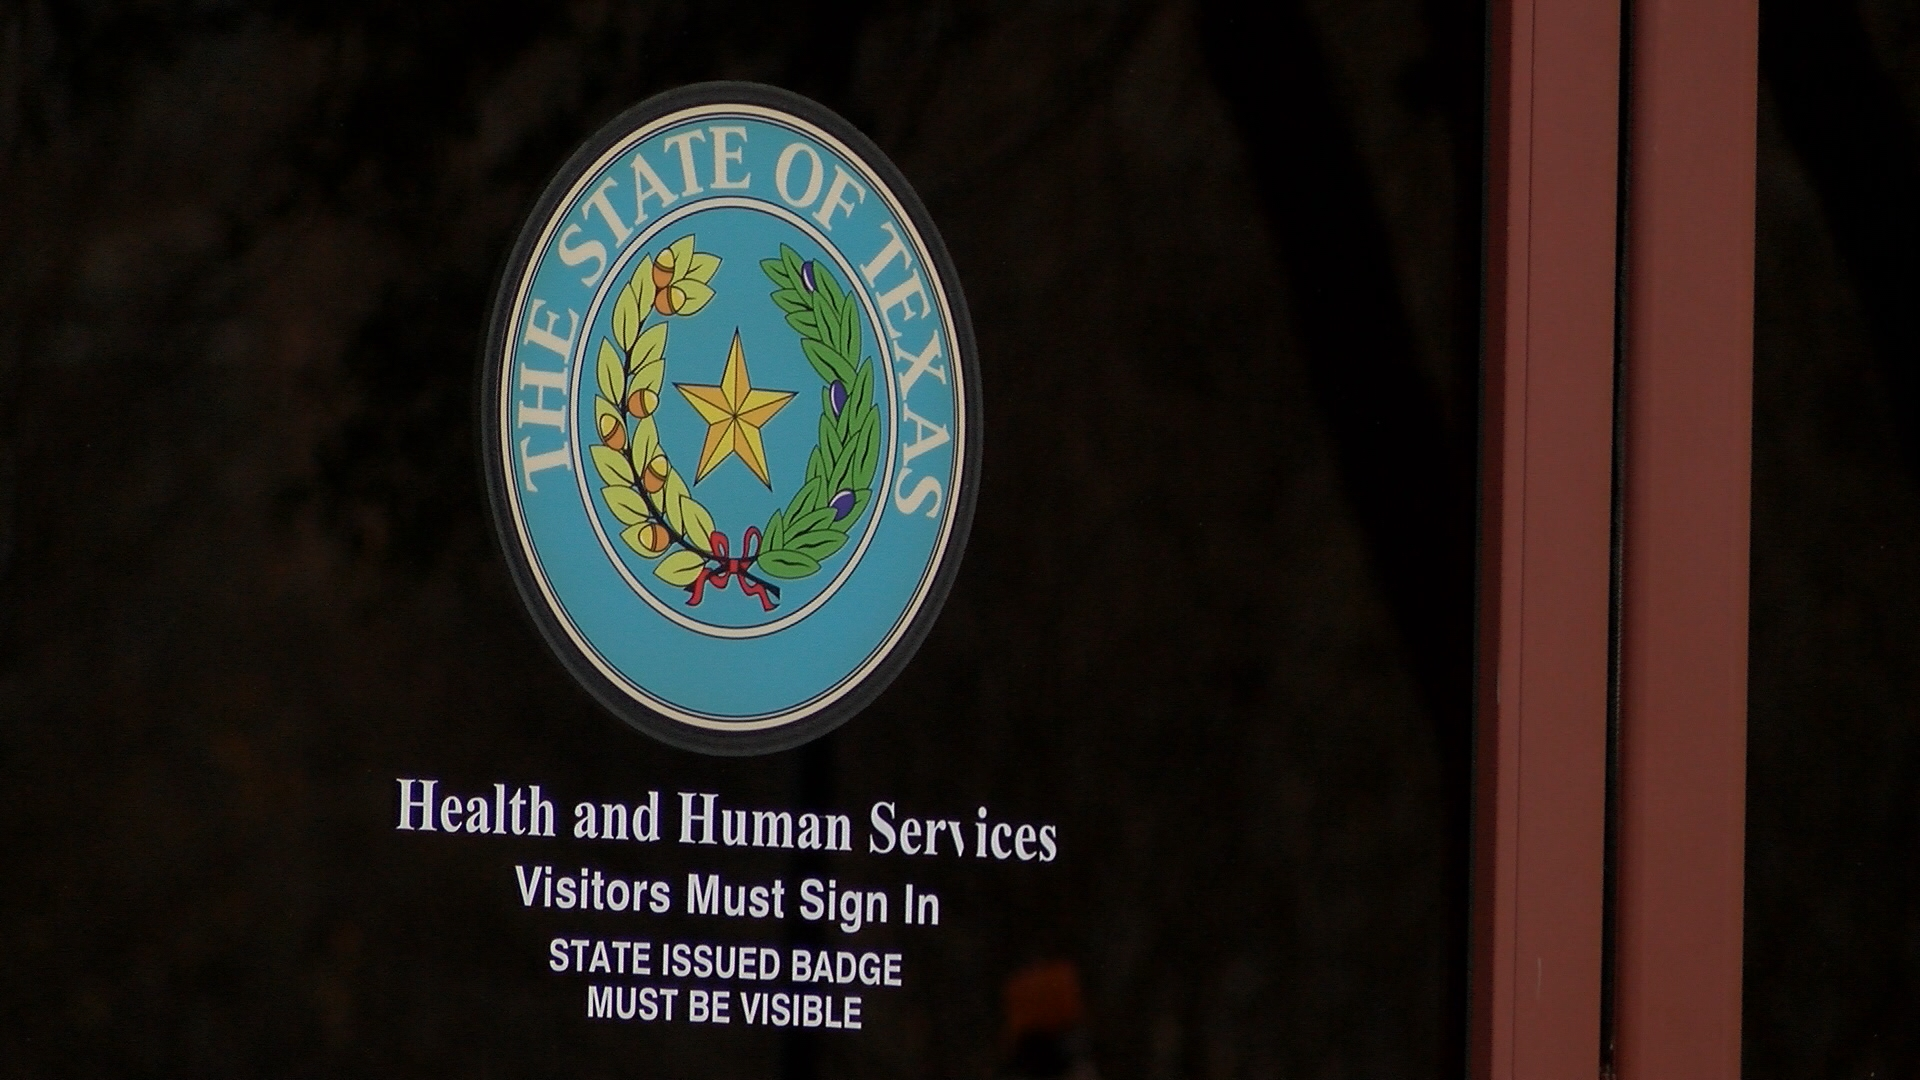 Texas Hhs Restricts Nursing Facility Visits To Protect Vulnerable